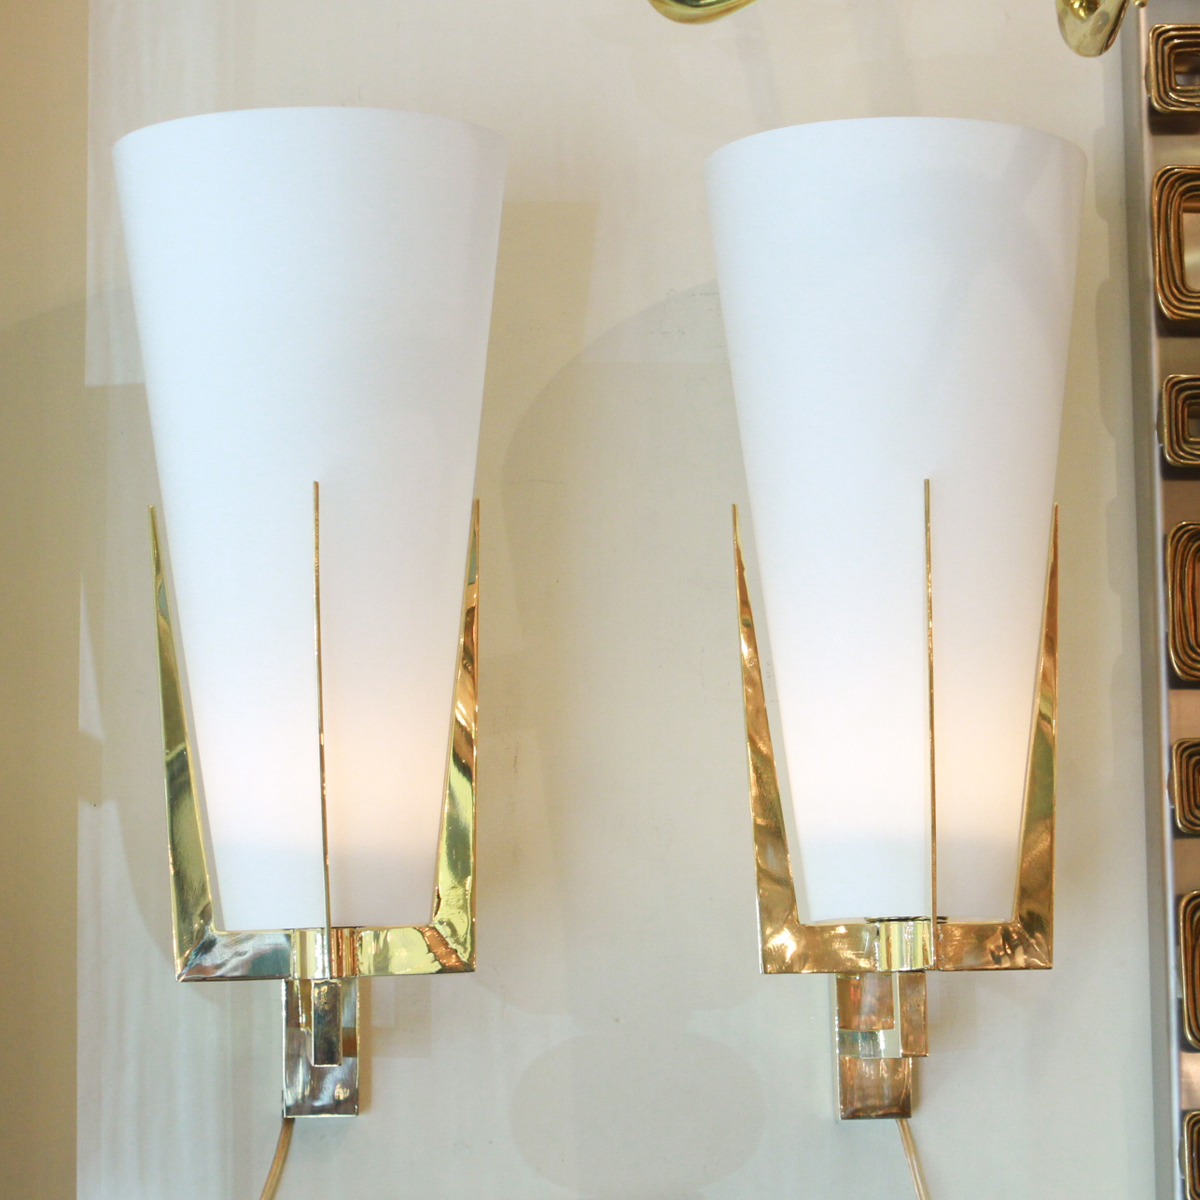 Pair Of Brass Sconces With Conical Frosted Glass Shades